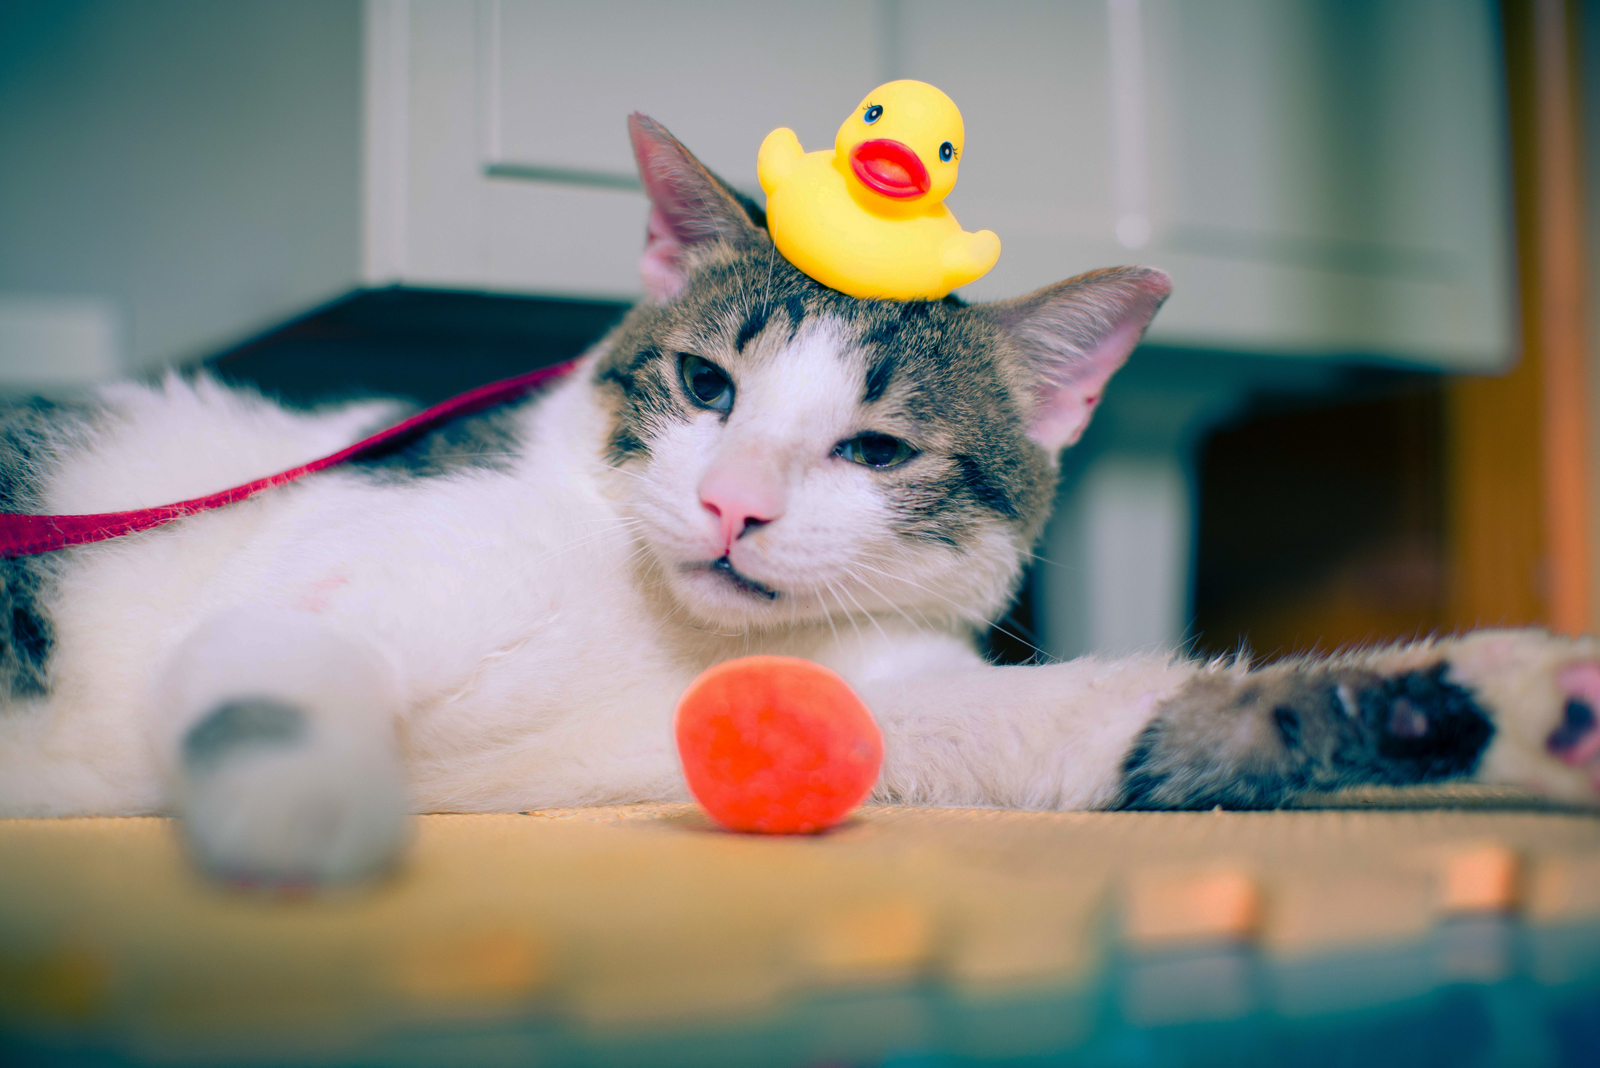 A cat playing with toys with a rubbe rduck on its head